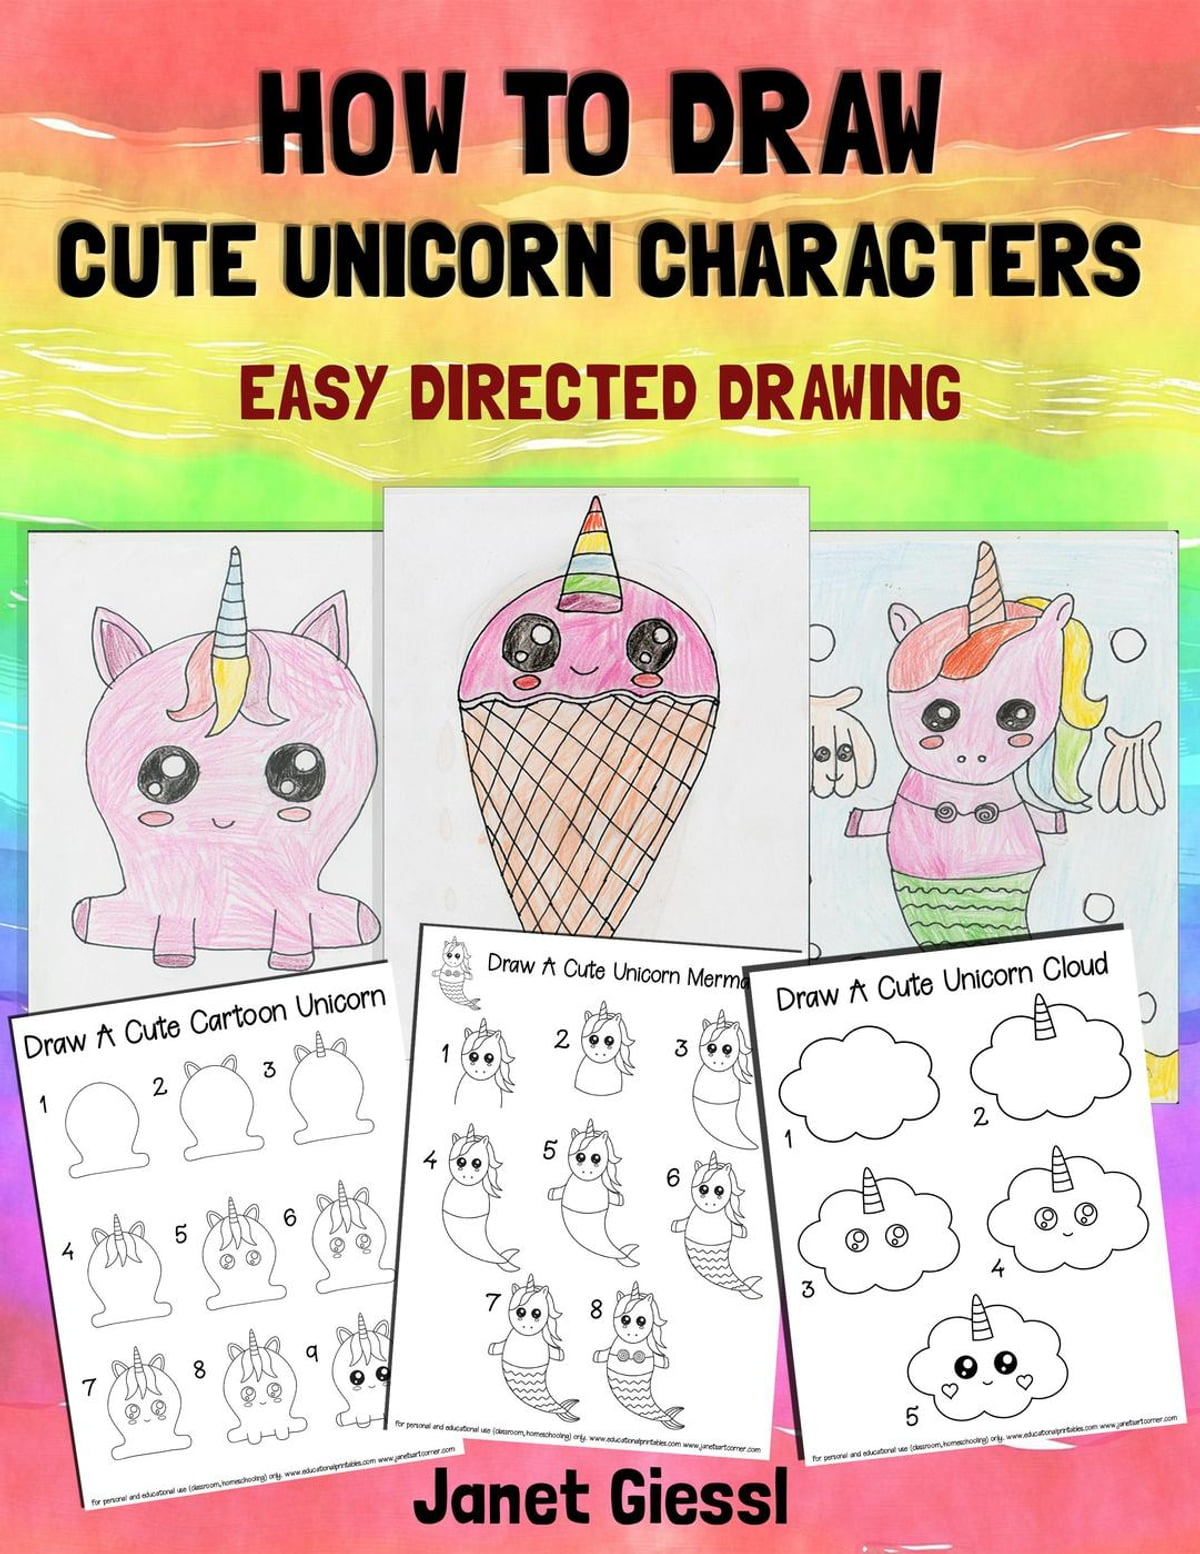 How To Draw Cute Unicorn Characters Ebook By Janet Giessl